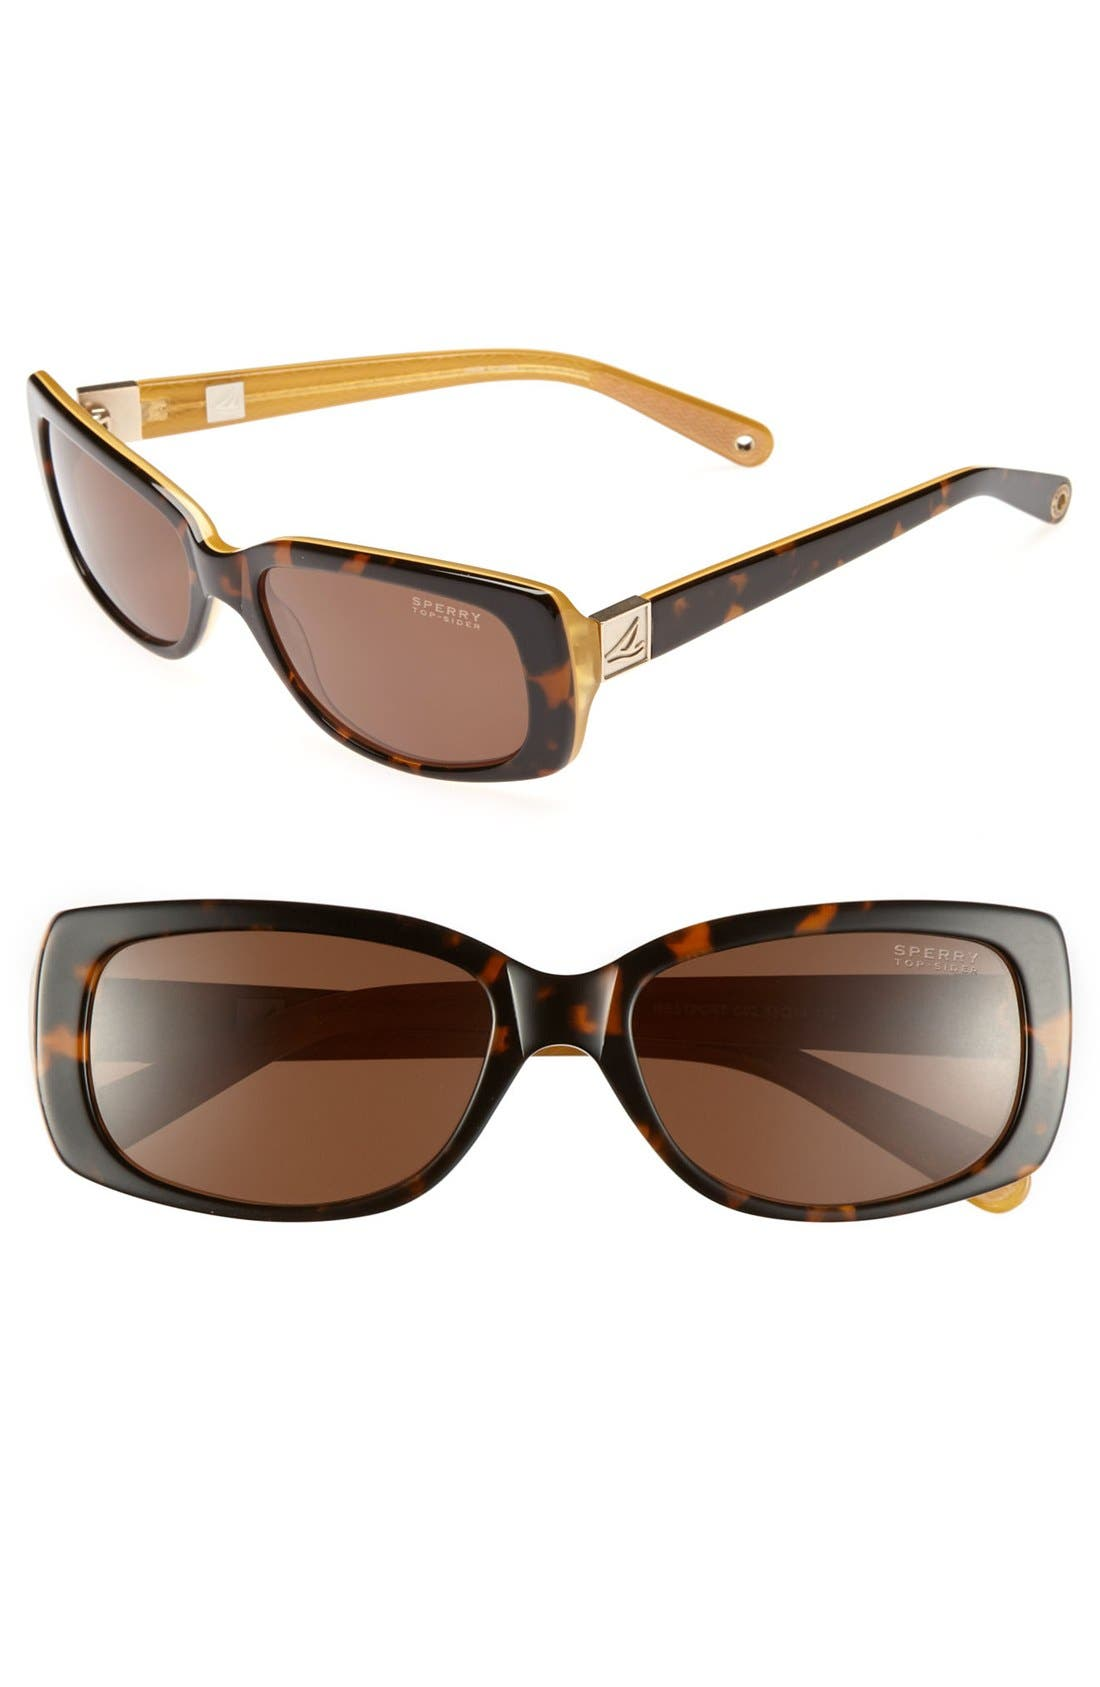 Alternate Image 1 Selected - Sperry Top-Sider® 'Westport' 55mm Sunglasses (Online Only)